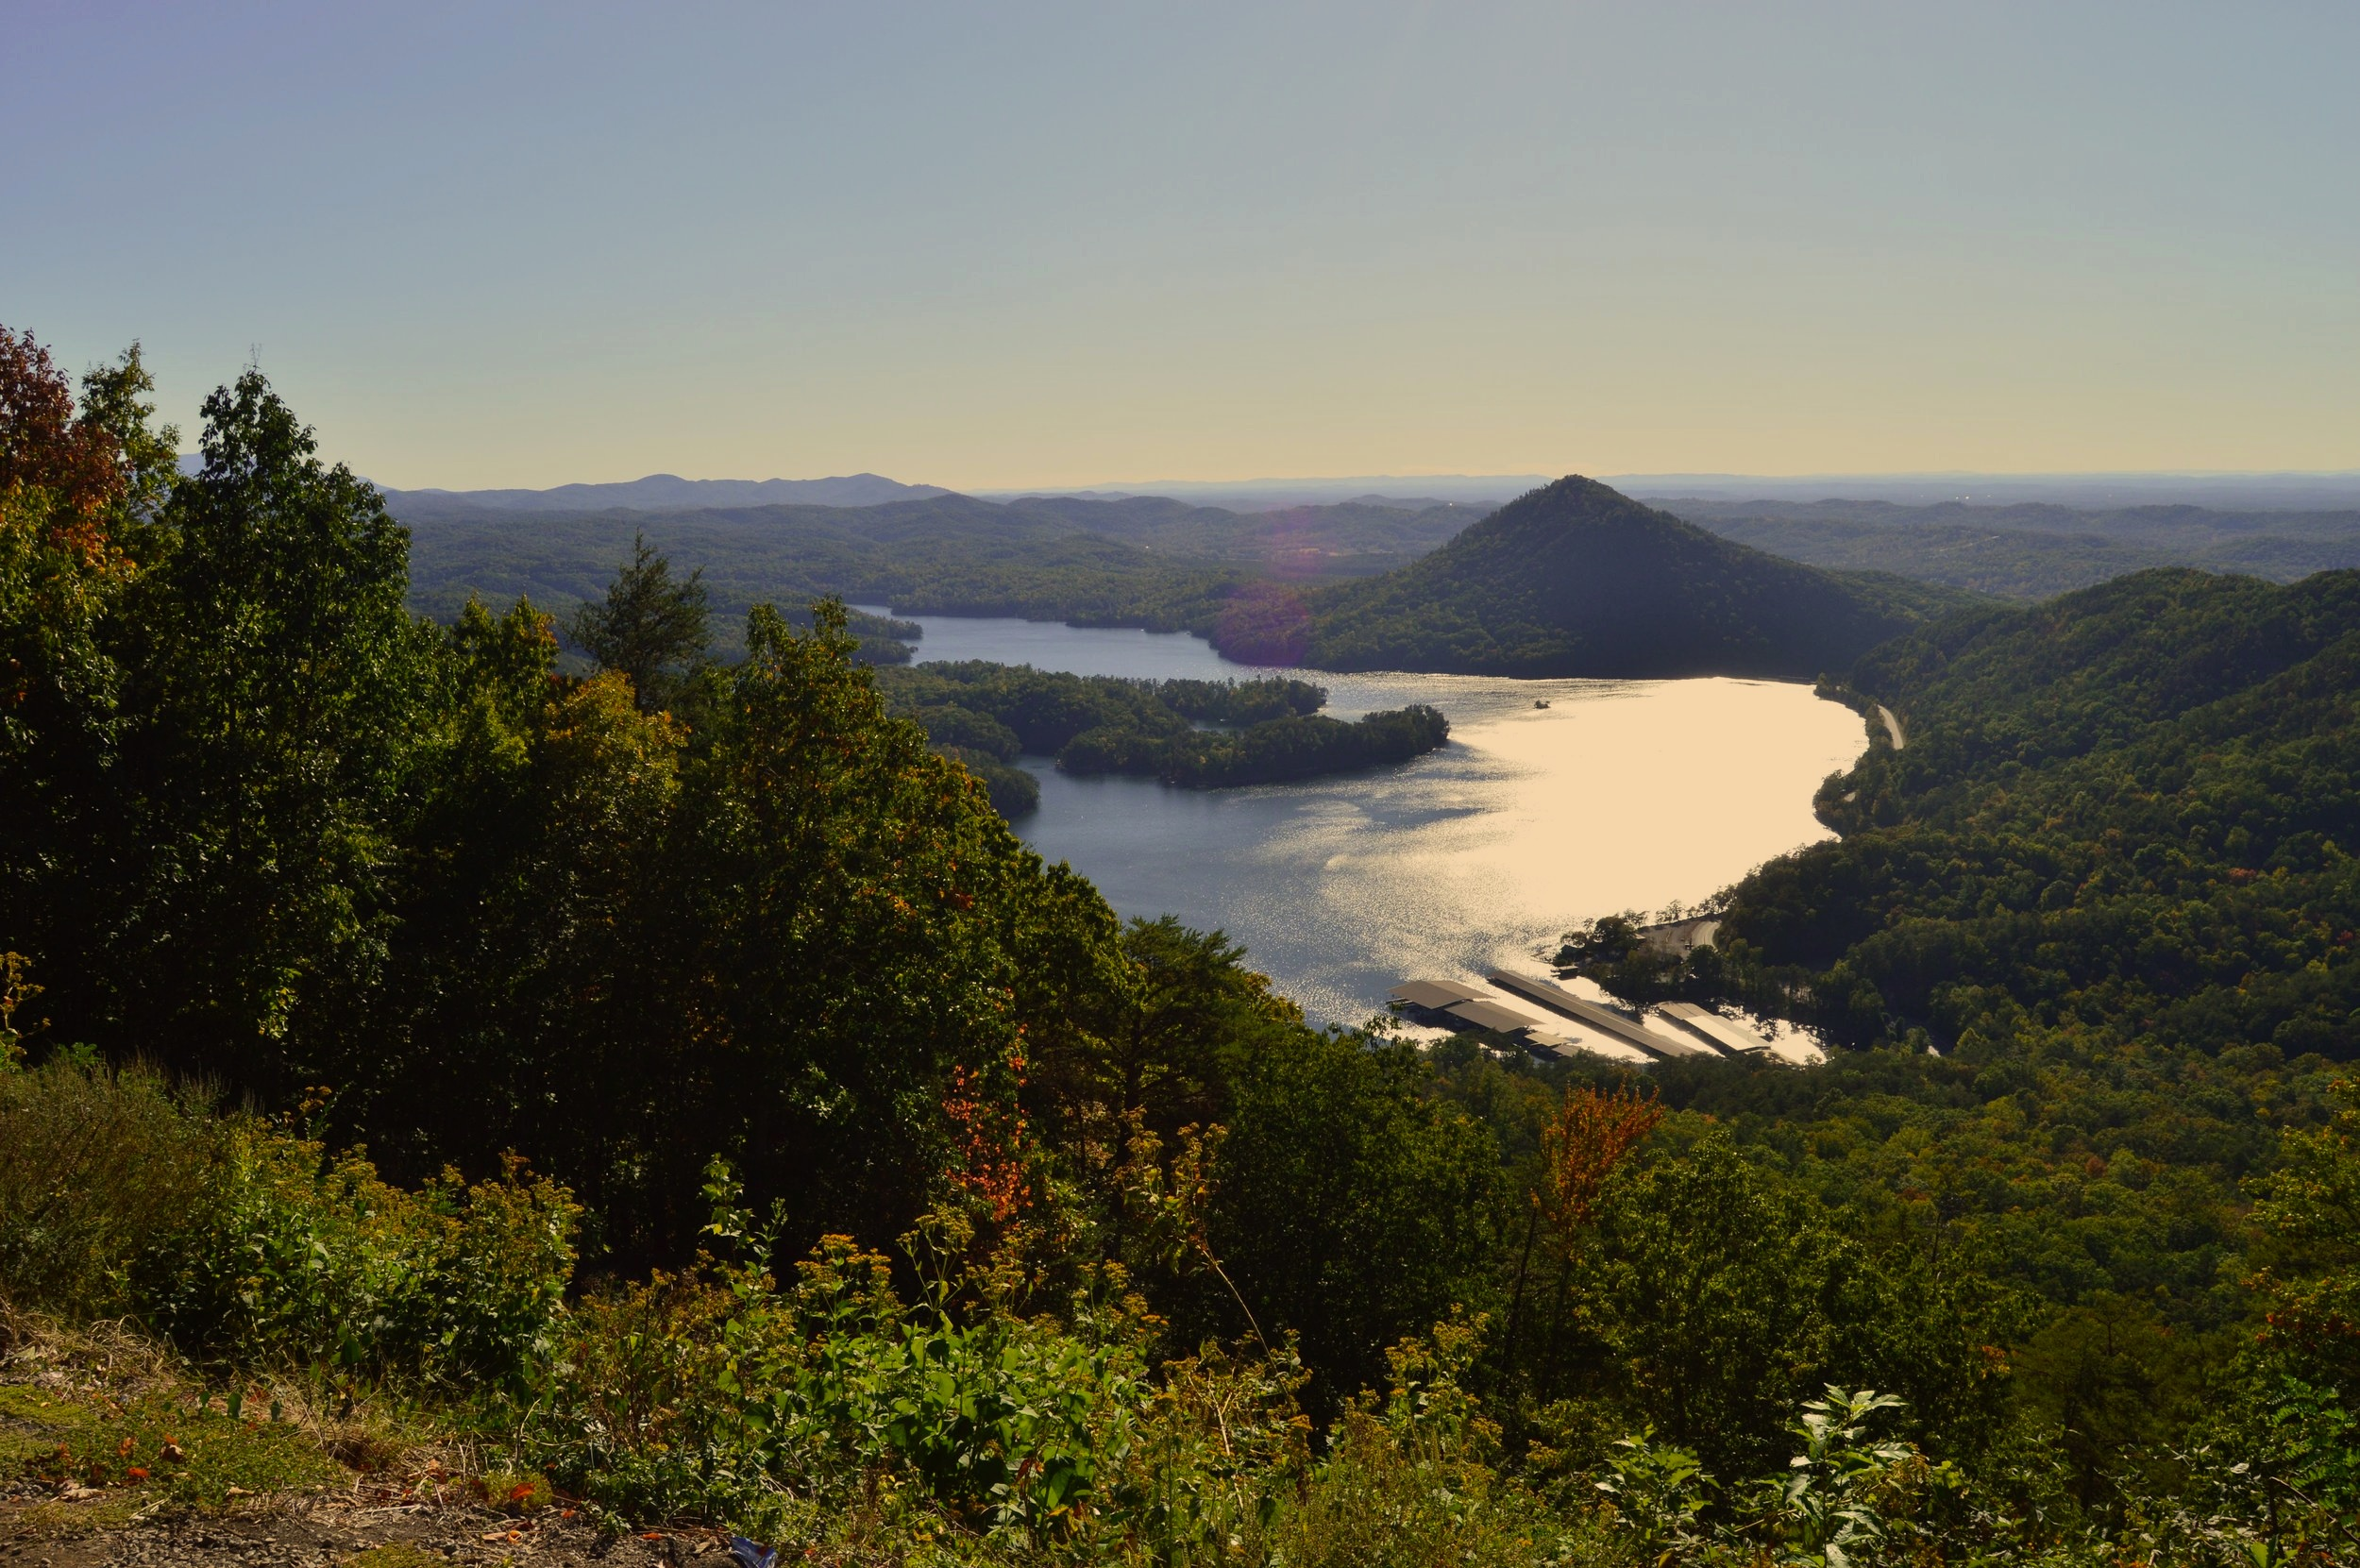 While you can drive along the shores of Parksville Lake (Lake Ocoee) it's best seen from the overlooks up on Chilhowee Mountain.